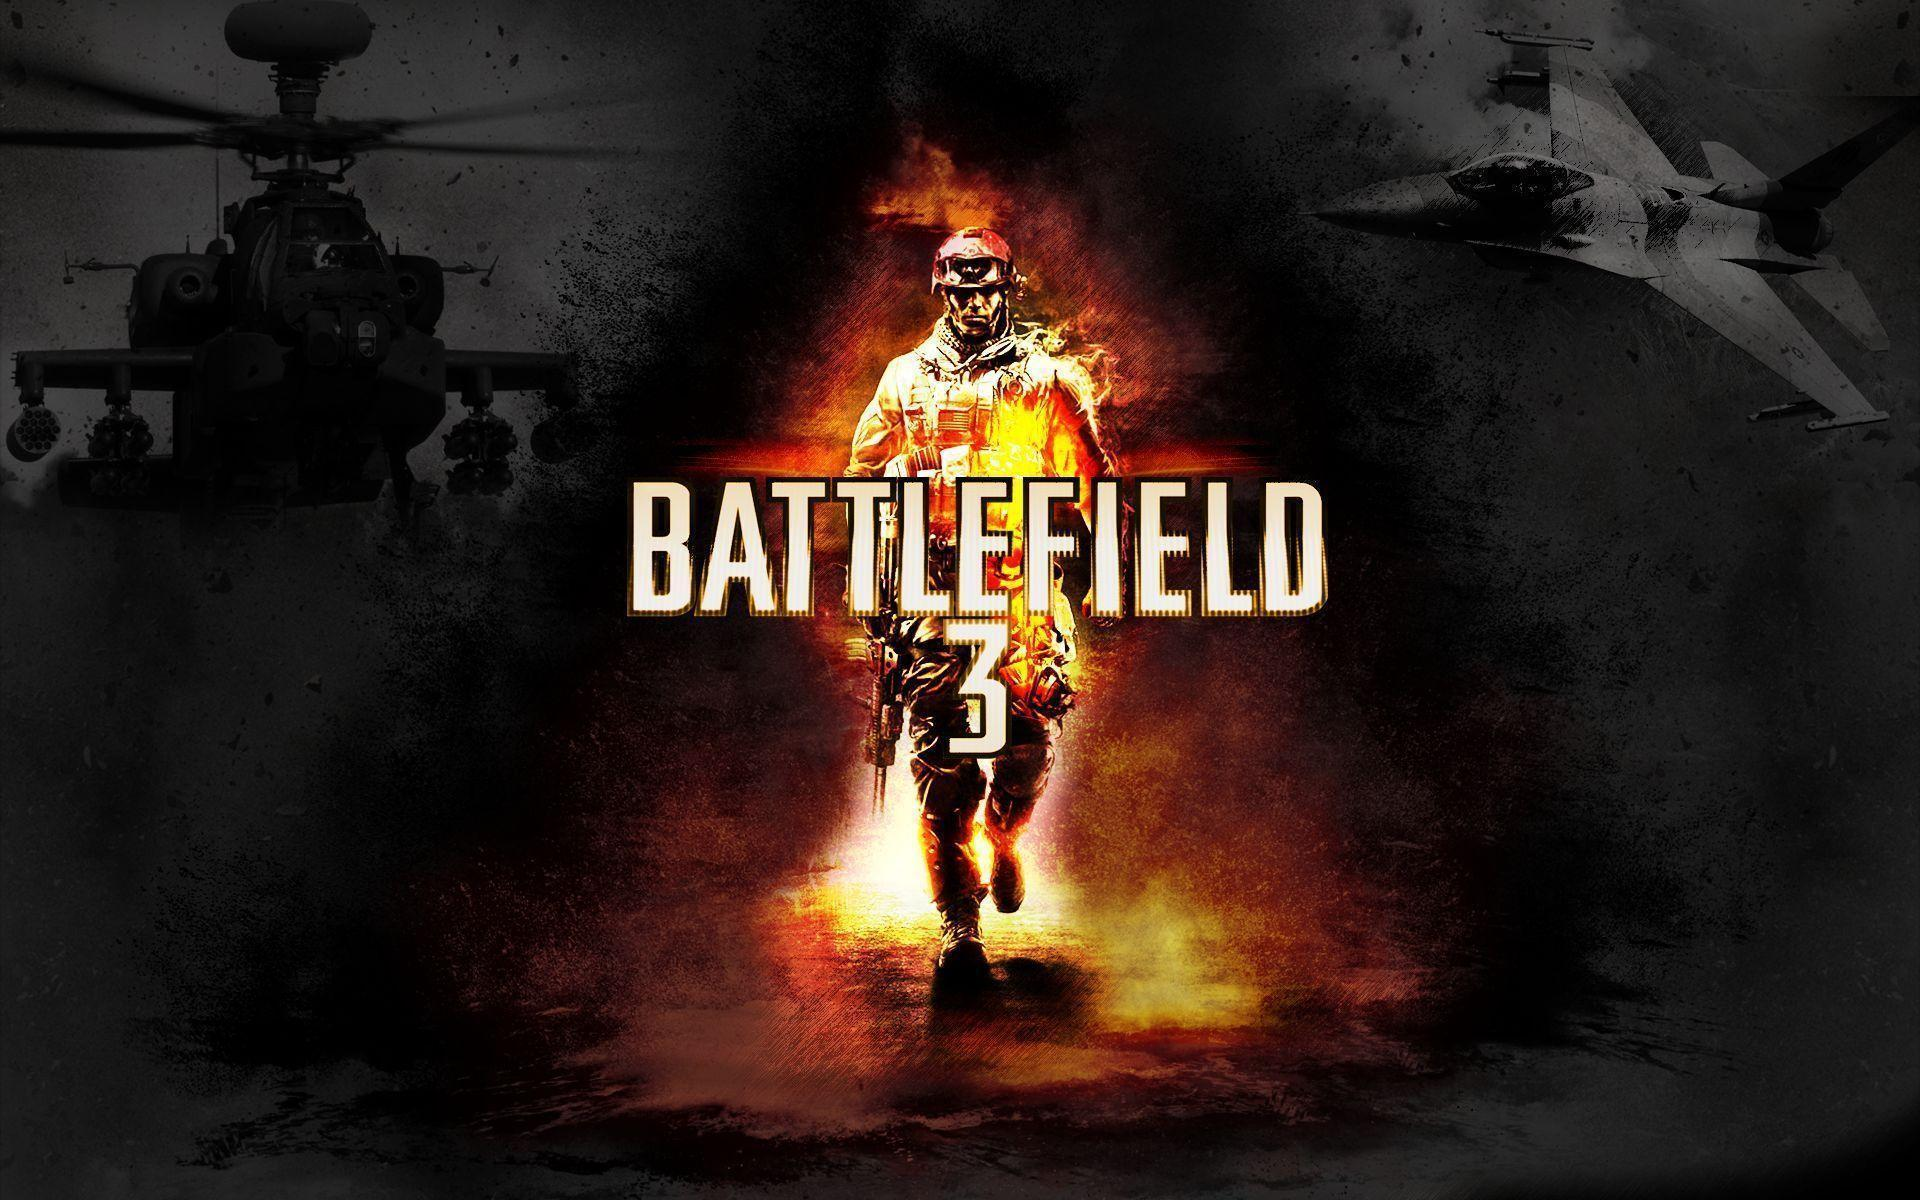 bf3 skull wallpaper - photo #25